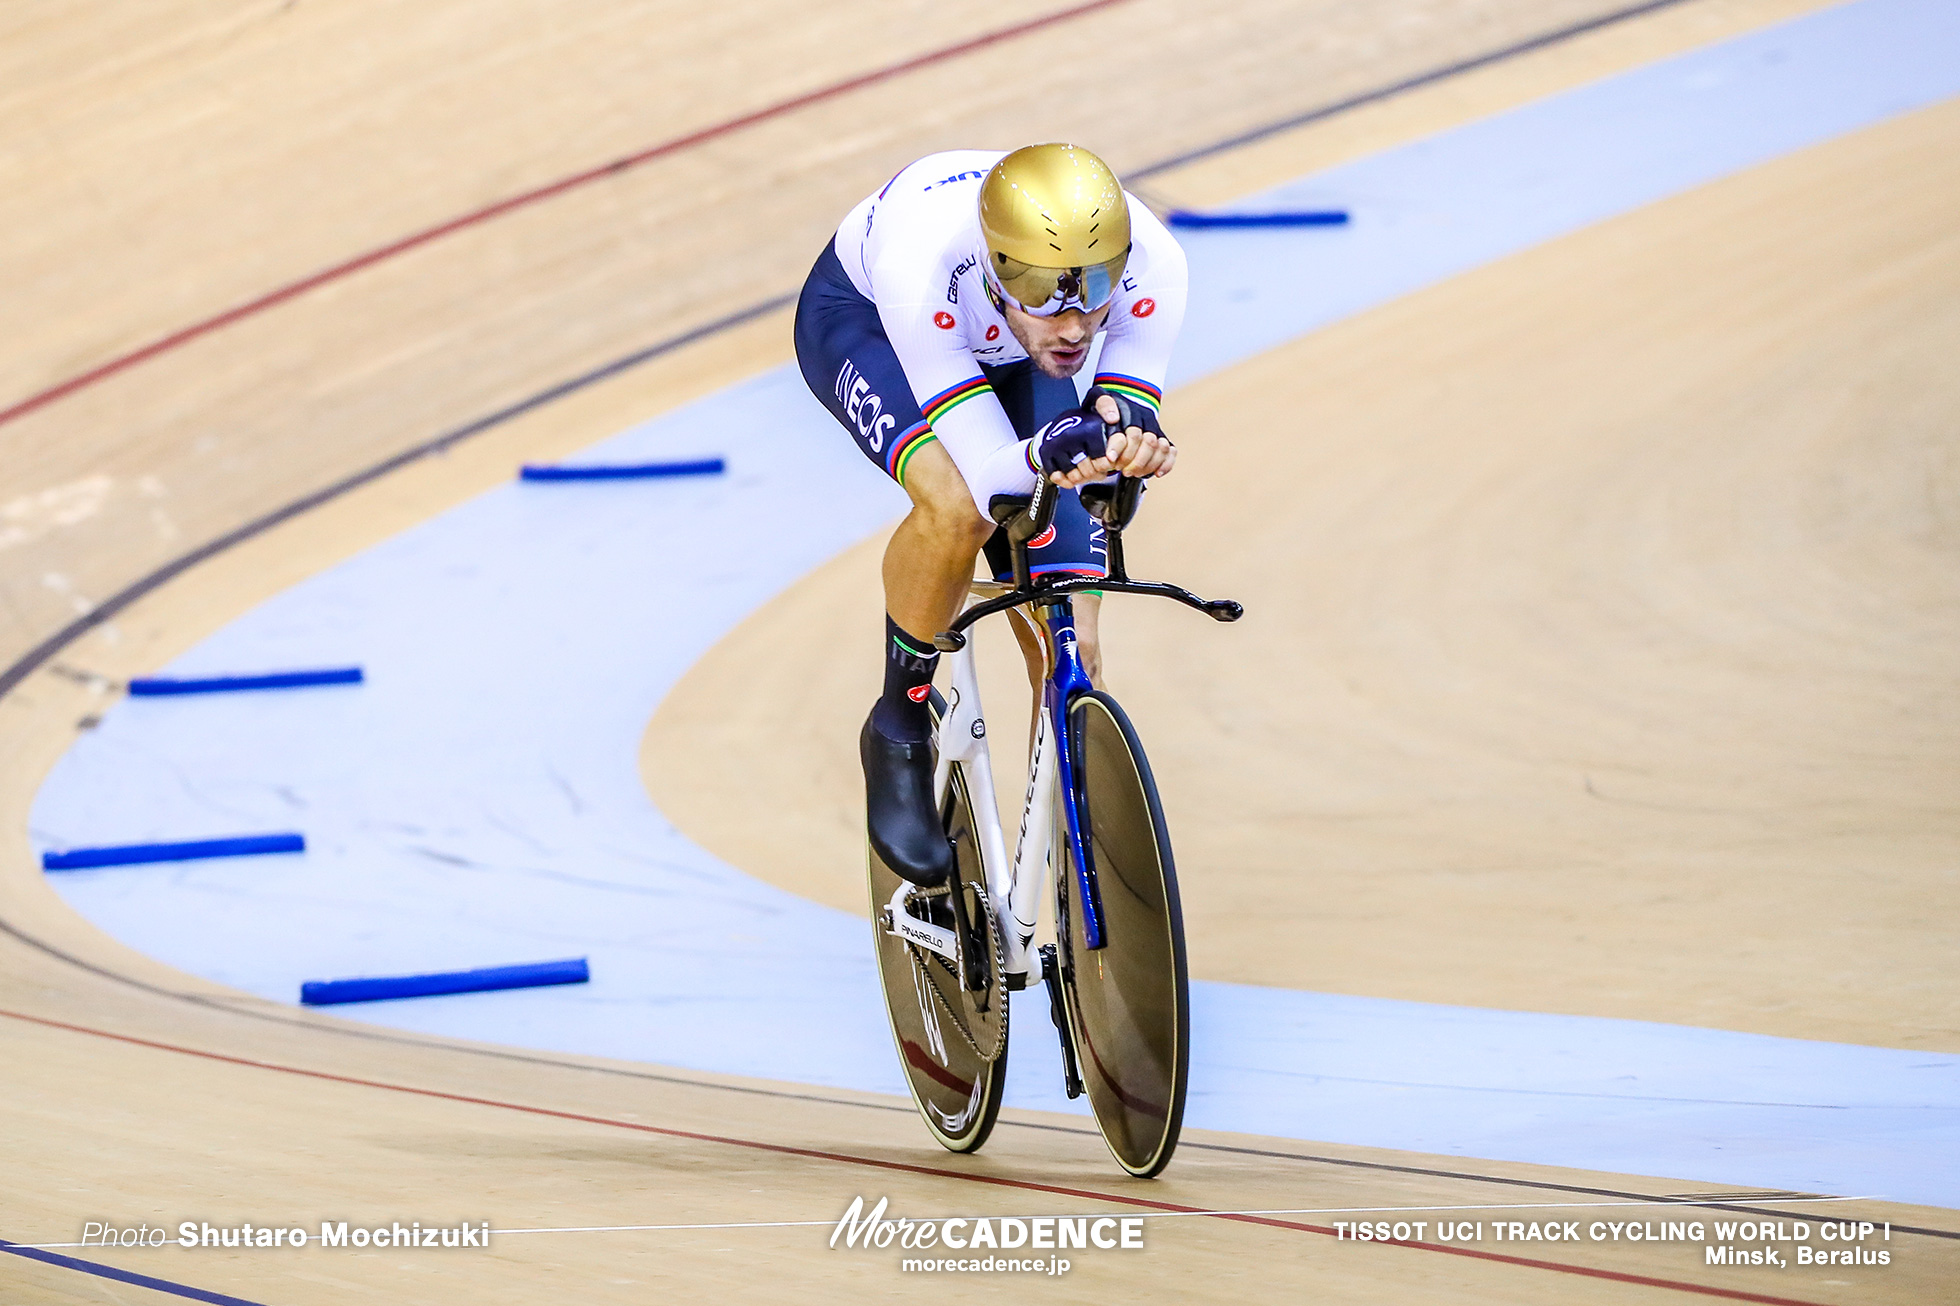 Fillipo Ganna, Qualifying / Men's Individual Pursuit / TISSOT UCI TRACK CYCLING WORLD CUP I, Minsk, Beralus